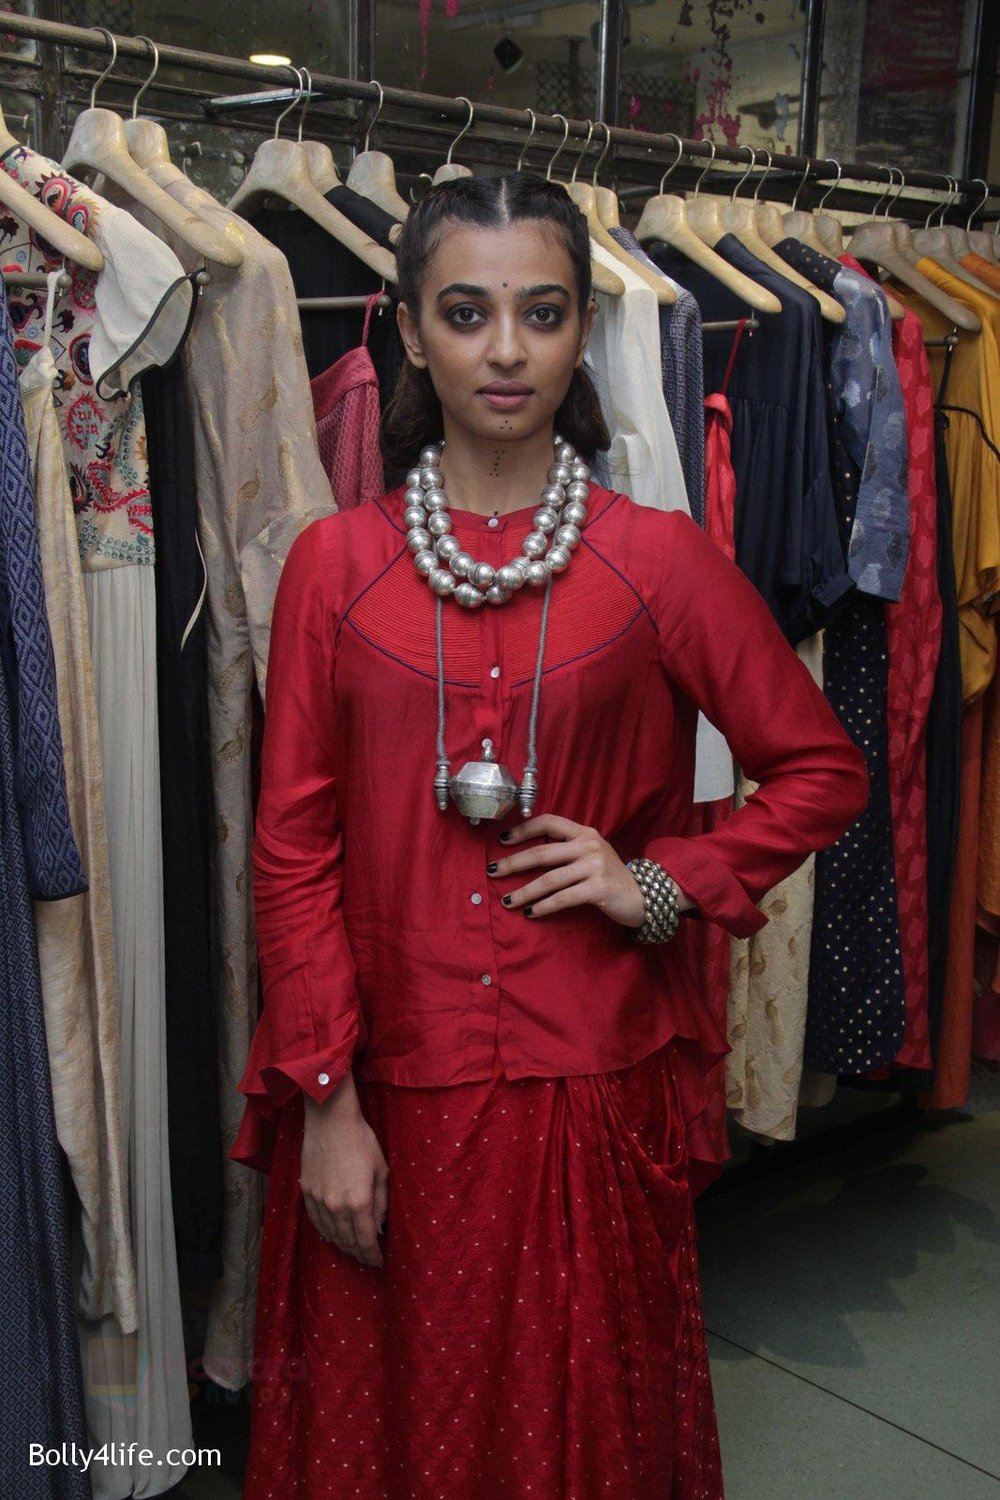 Radhika-Apte-unveil-Festive-Edit-of-new-Luxury-Pret-label-AMOH-by-Designers-Monica-Karishma-of-JADE-on-26th-Sept-2016-31.jpg